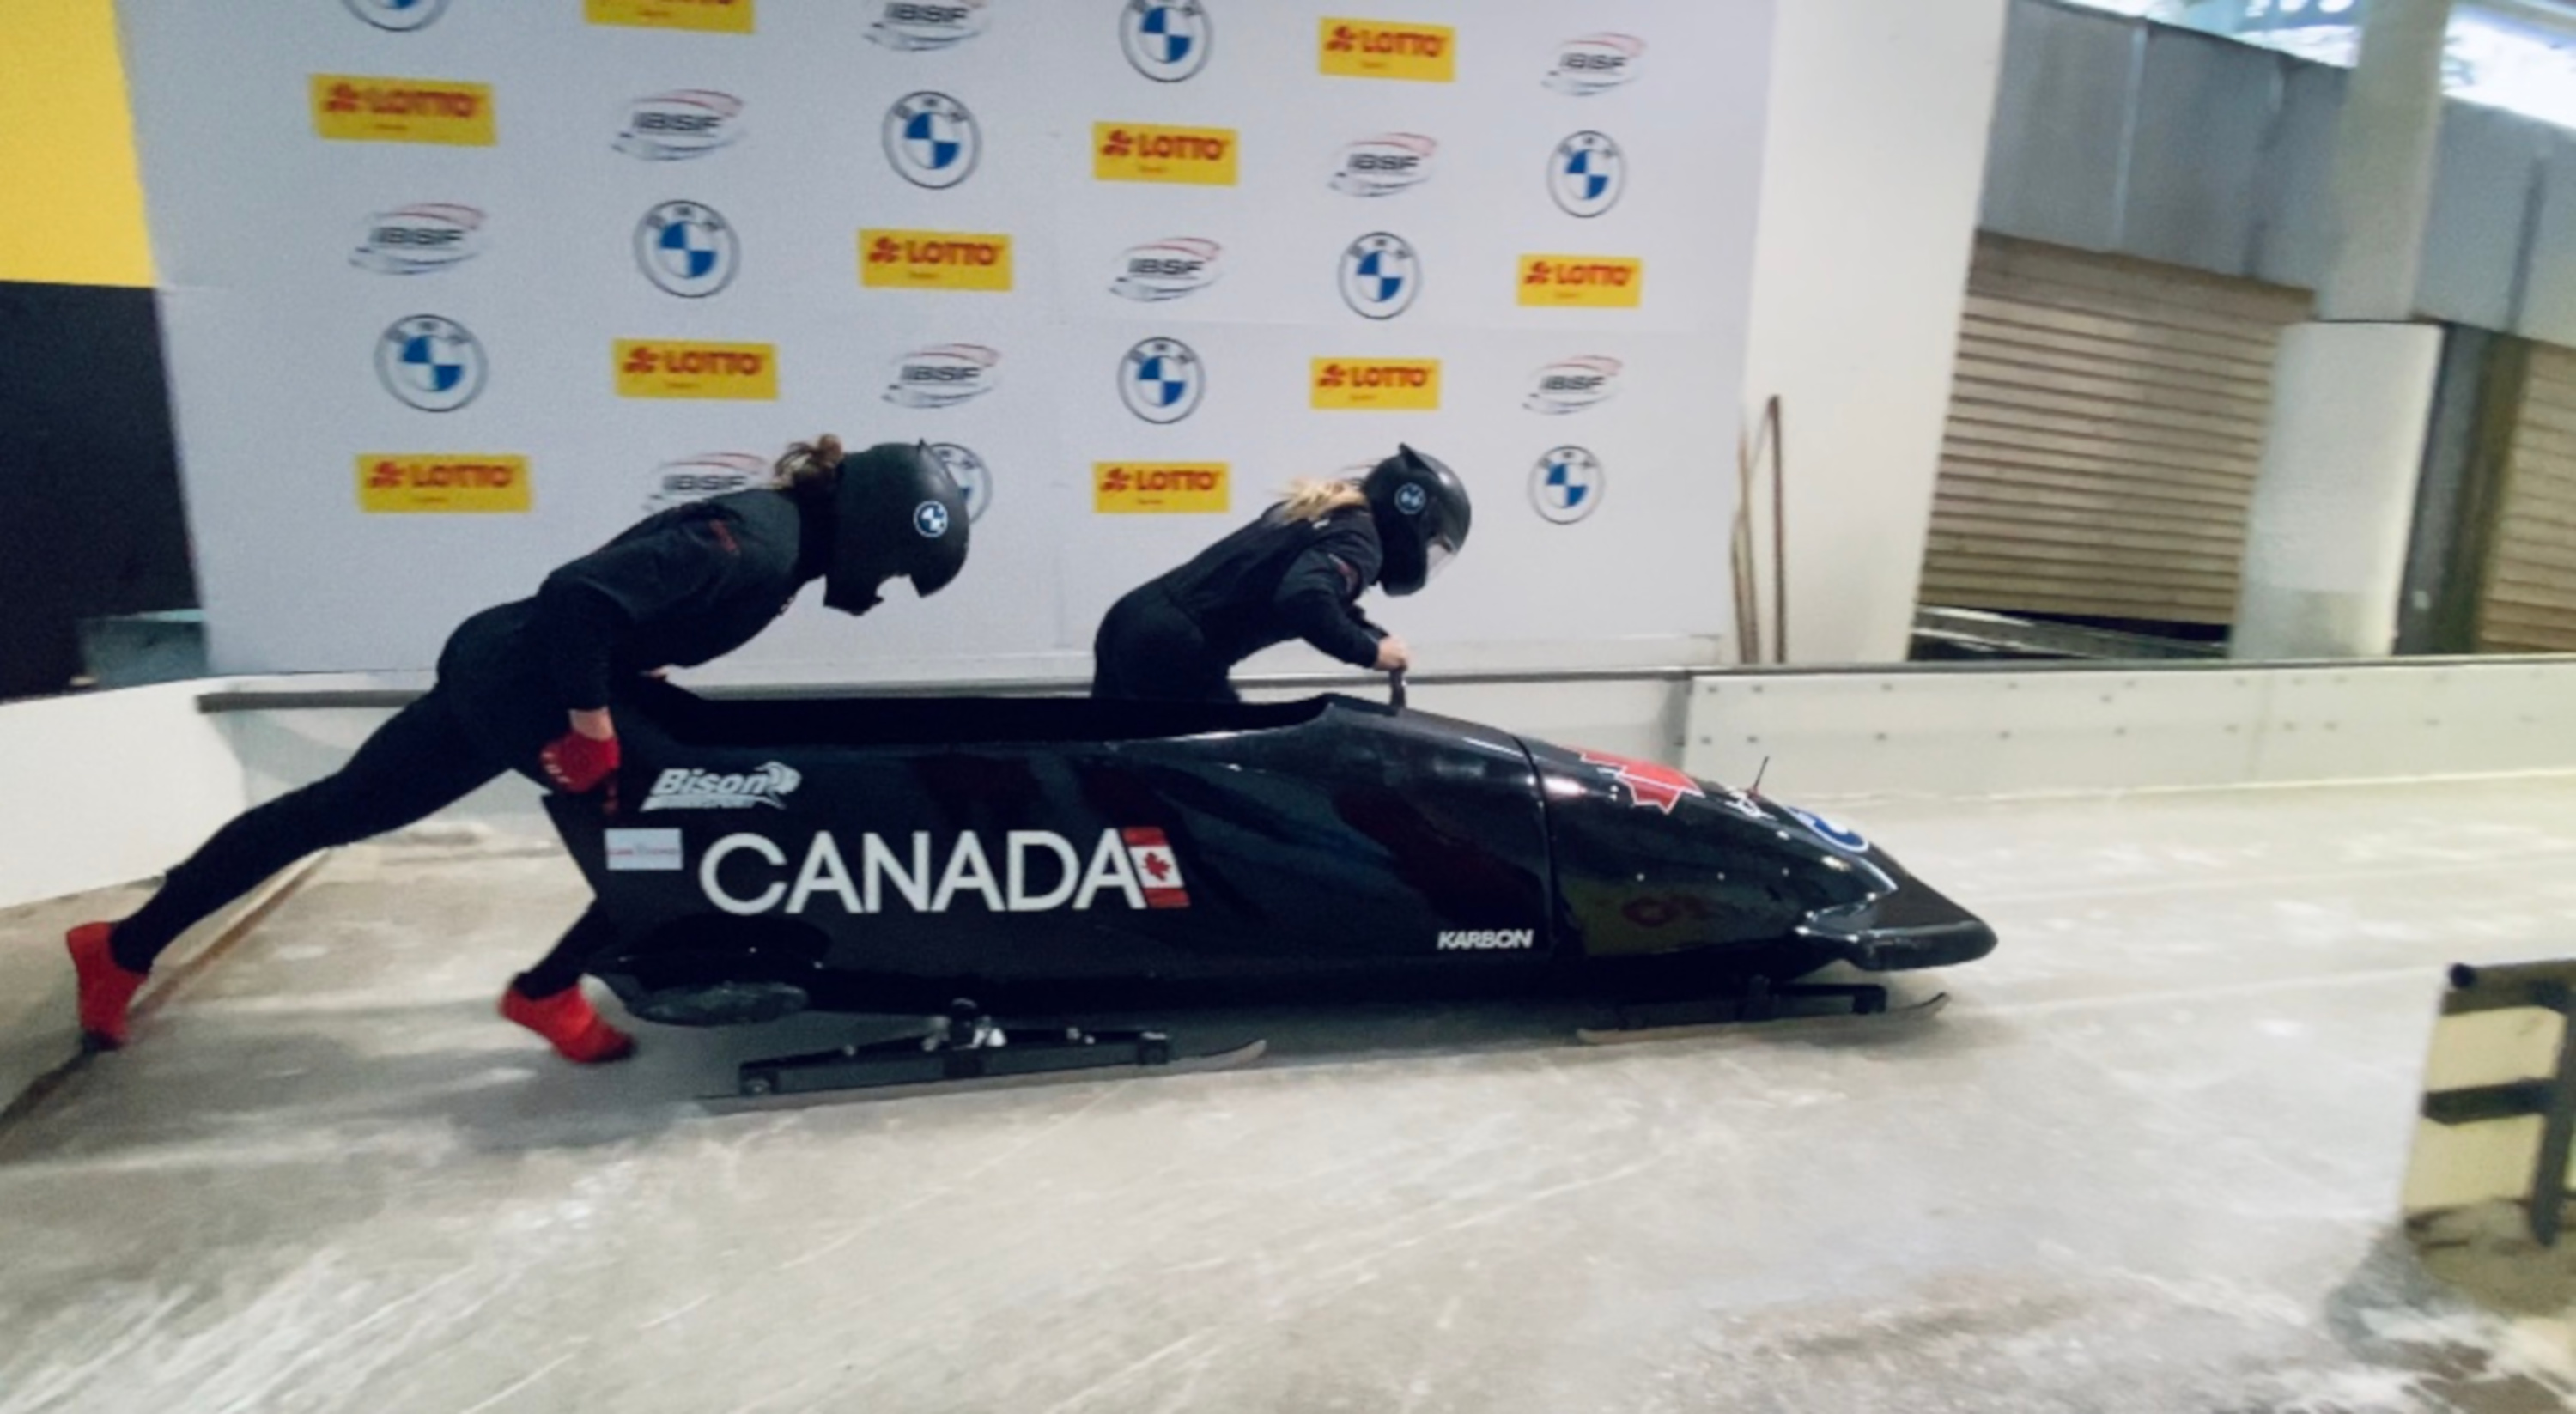 Stephanie Drost and teammate during bobsleigh practice